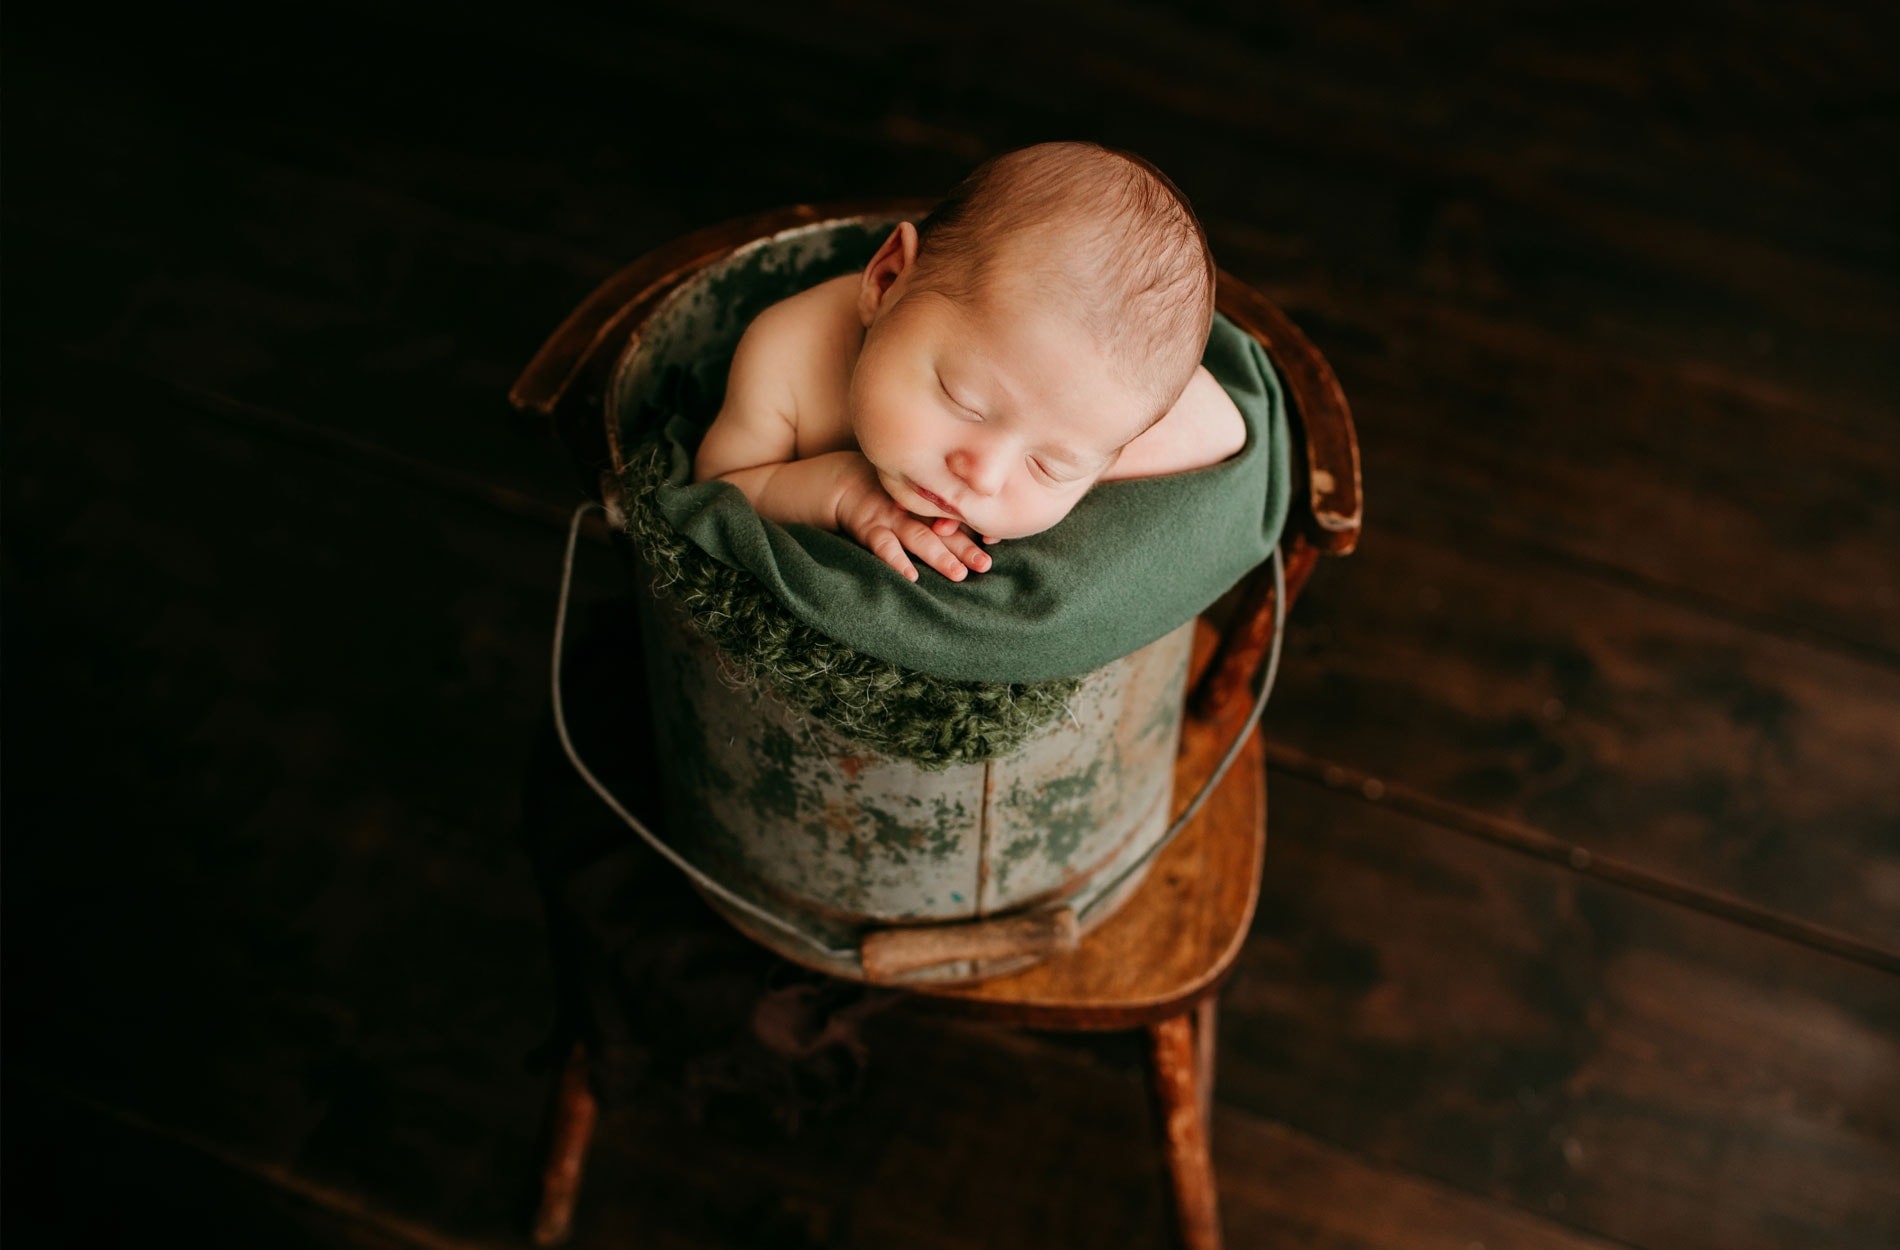 Newborn Photography, baby wrapped up in green blanket in bucket